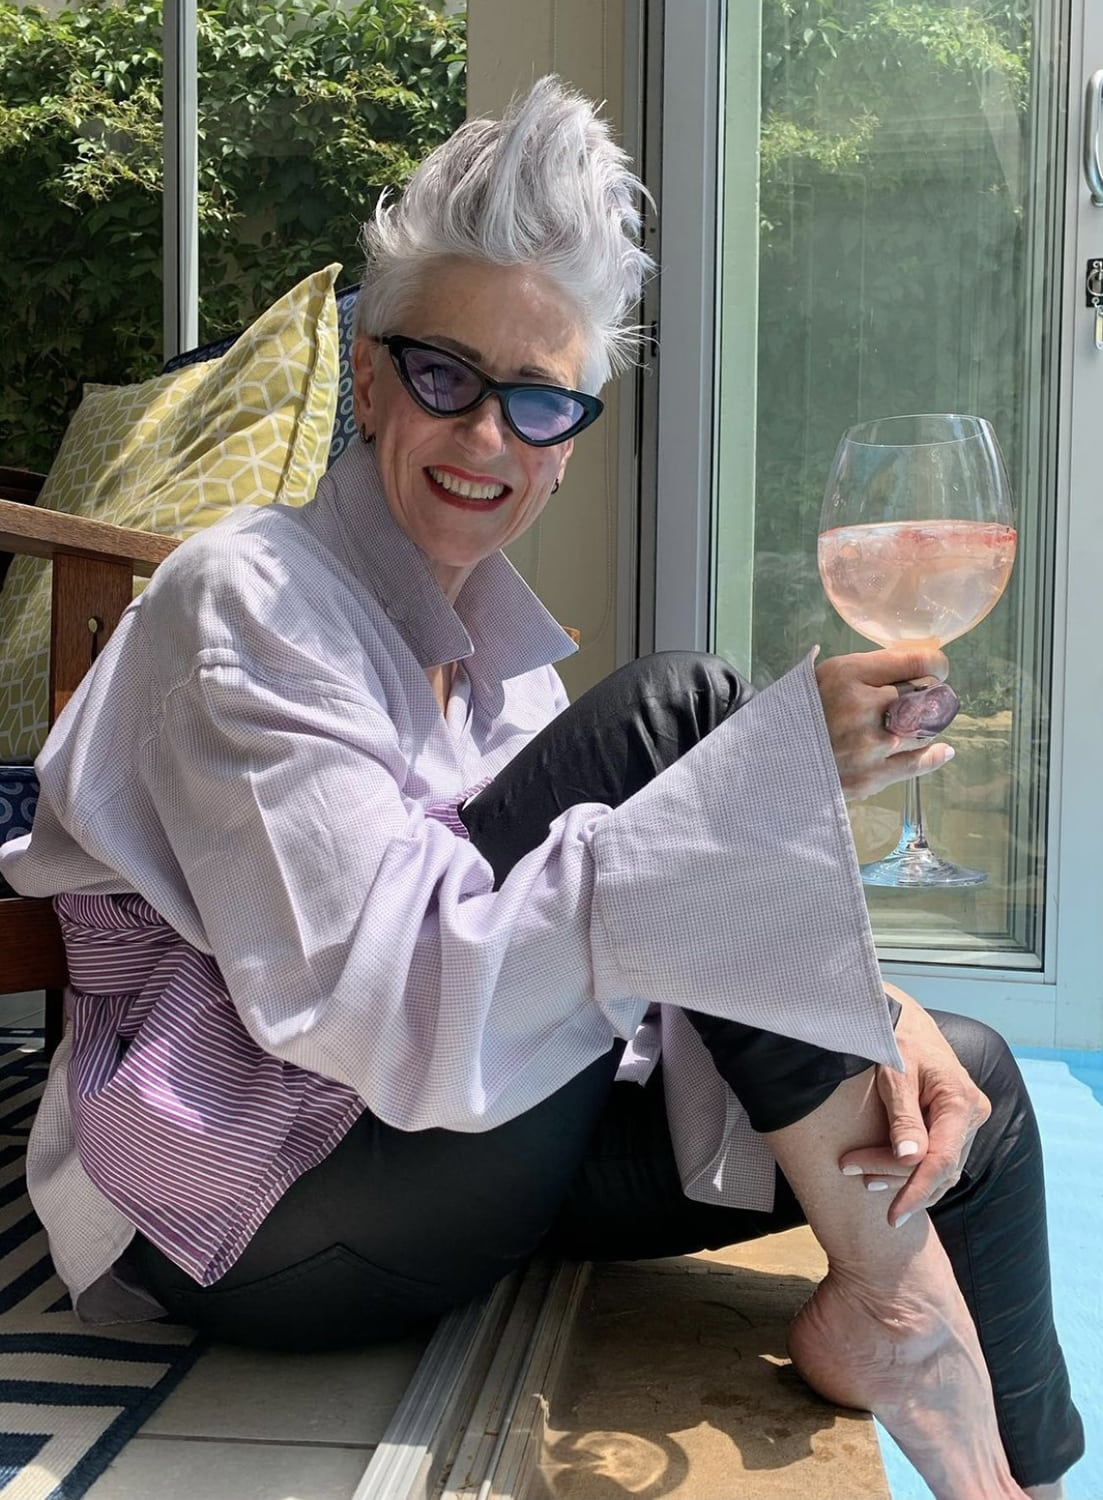 deborah darling with a glass of wine